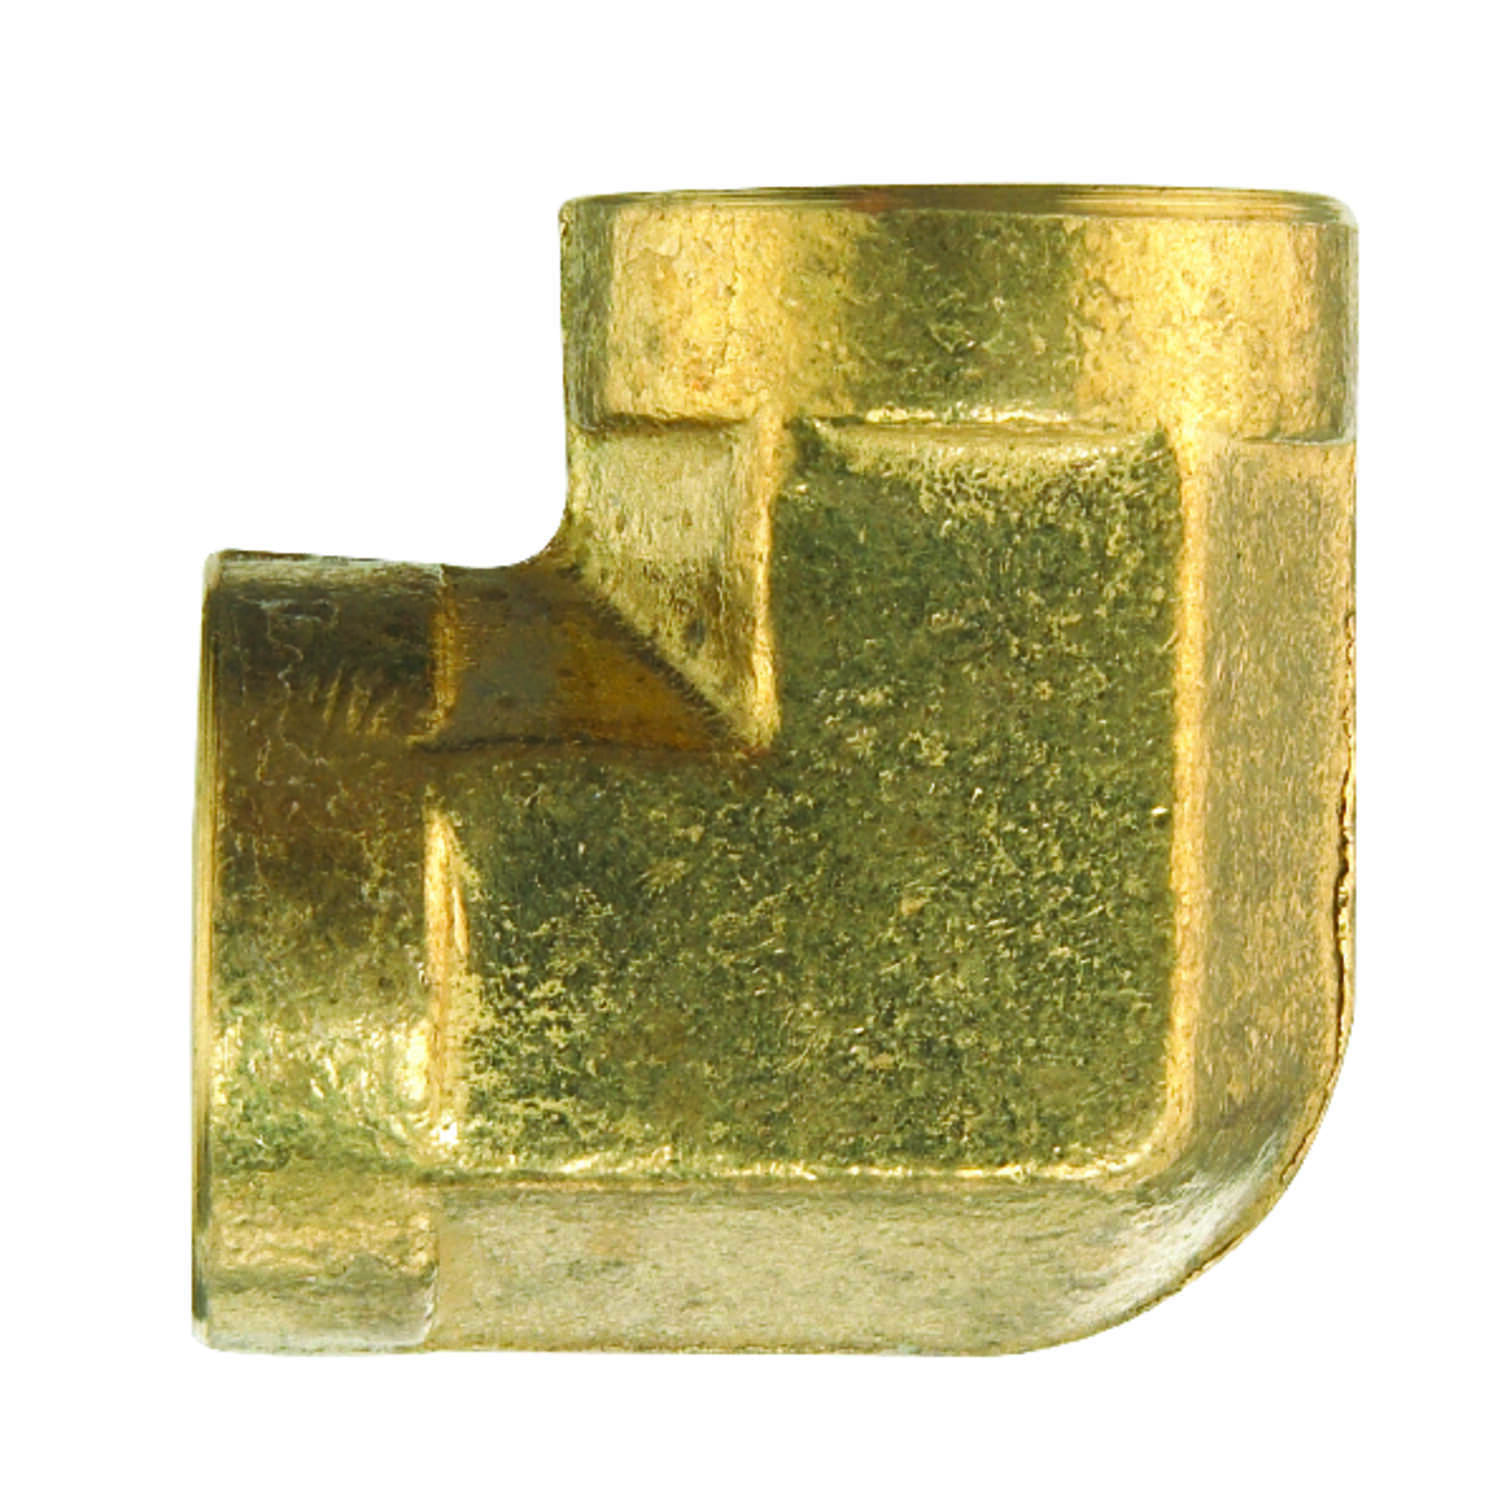 JMF  1/4 in. Dia. x 1/4 in. Dia. FPT To FPT  90 deg. Yellow Brass  Elbow